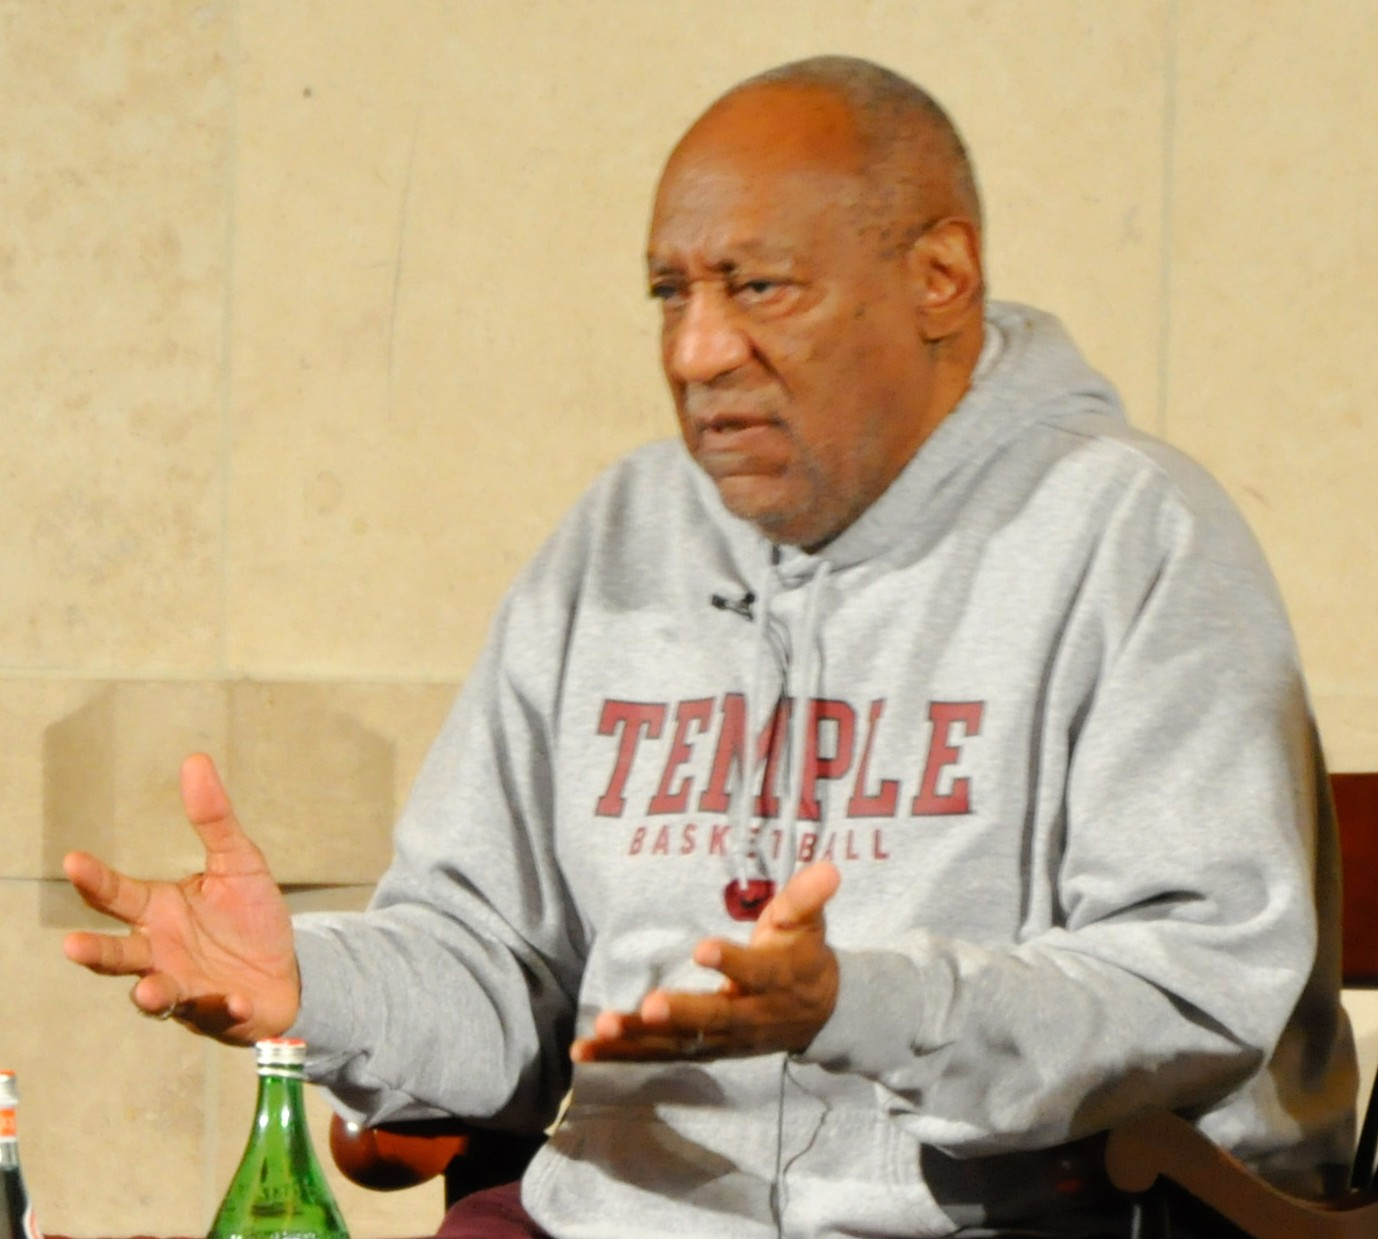 Did the Legal System Pay Too High a Price to Free Bill Cosby?